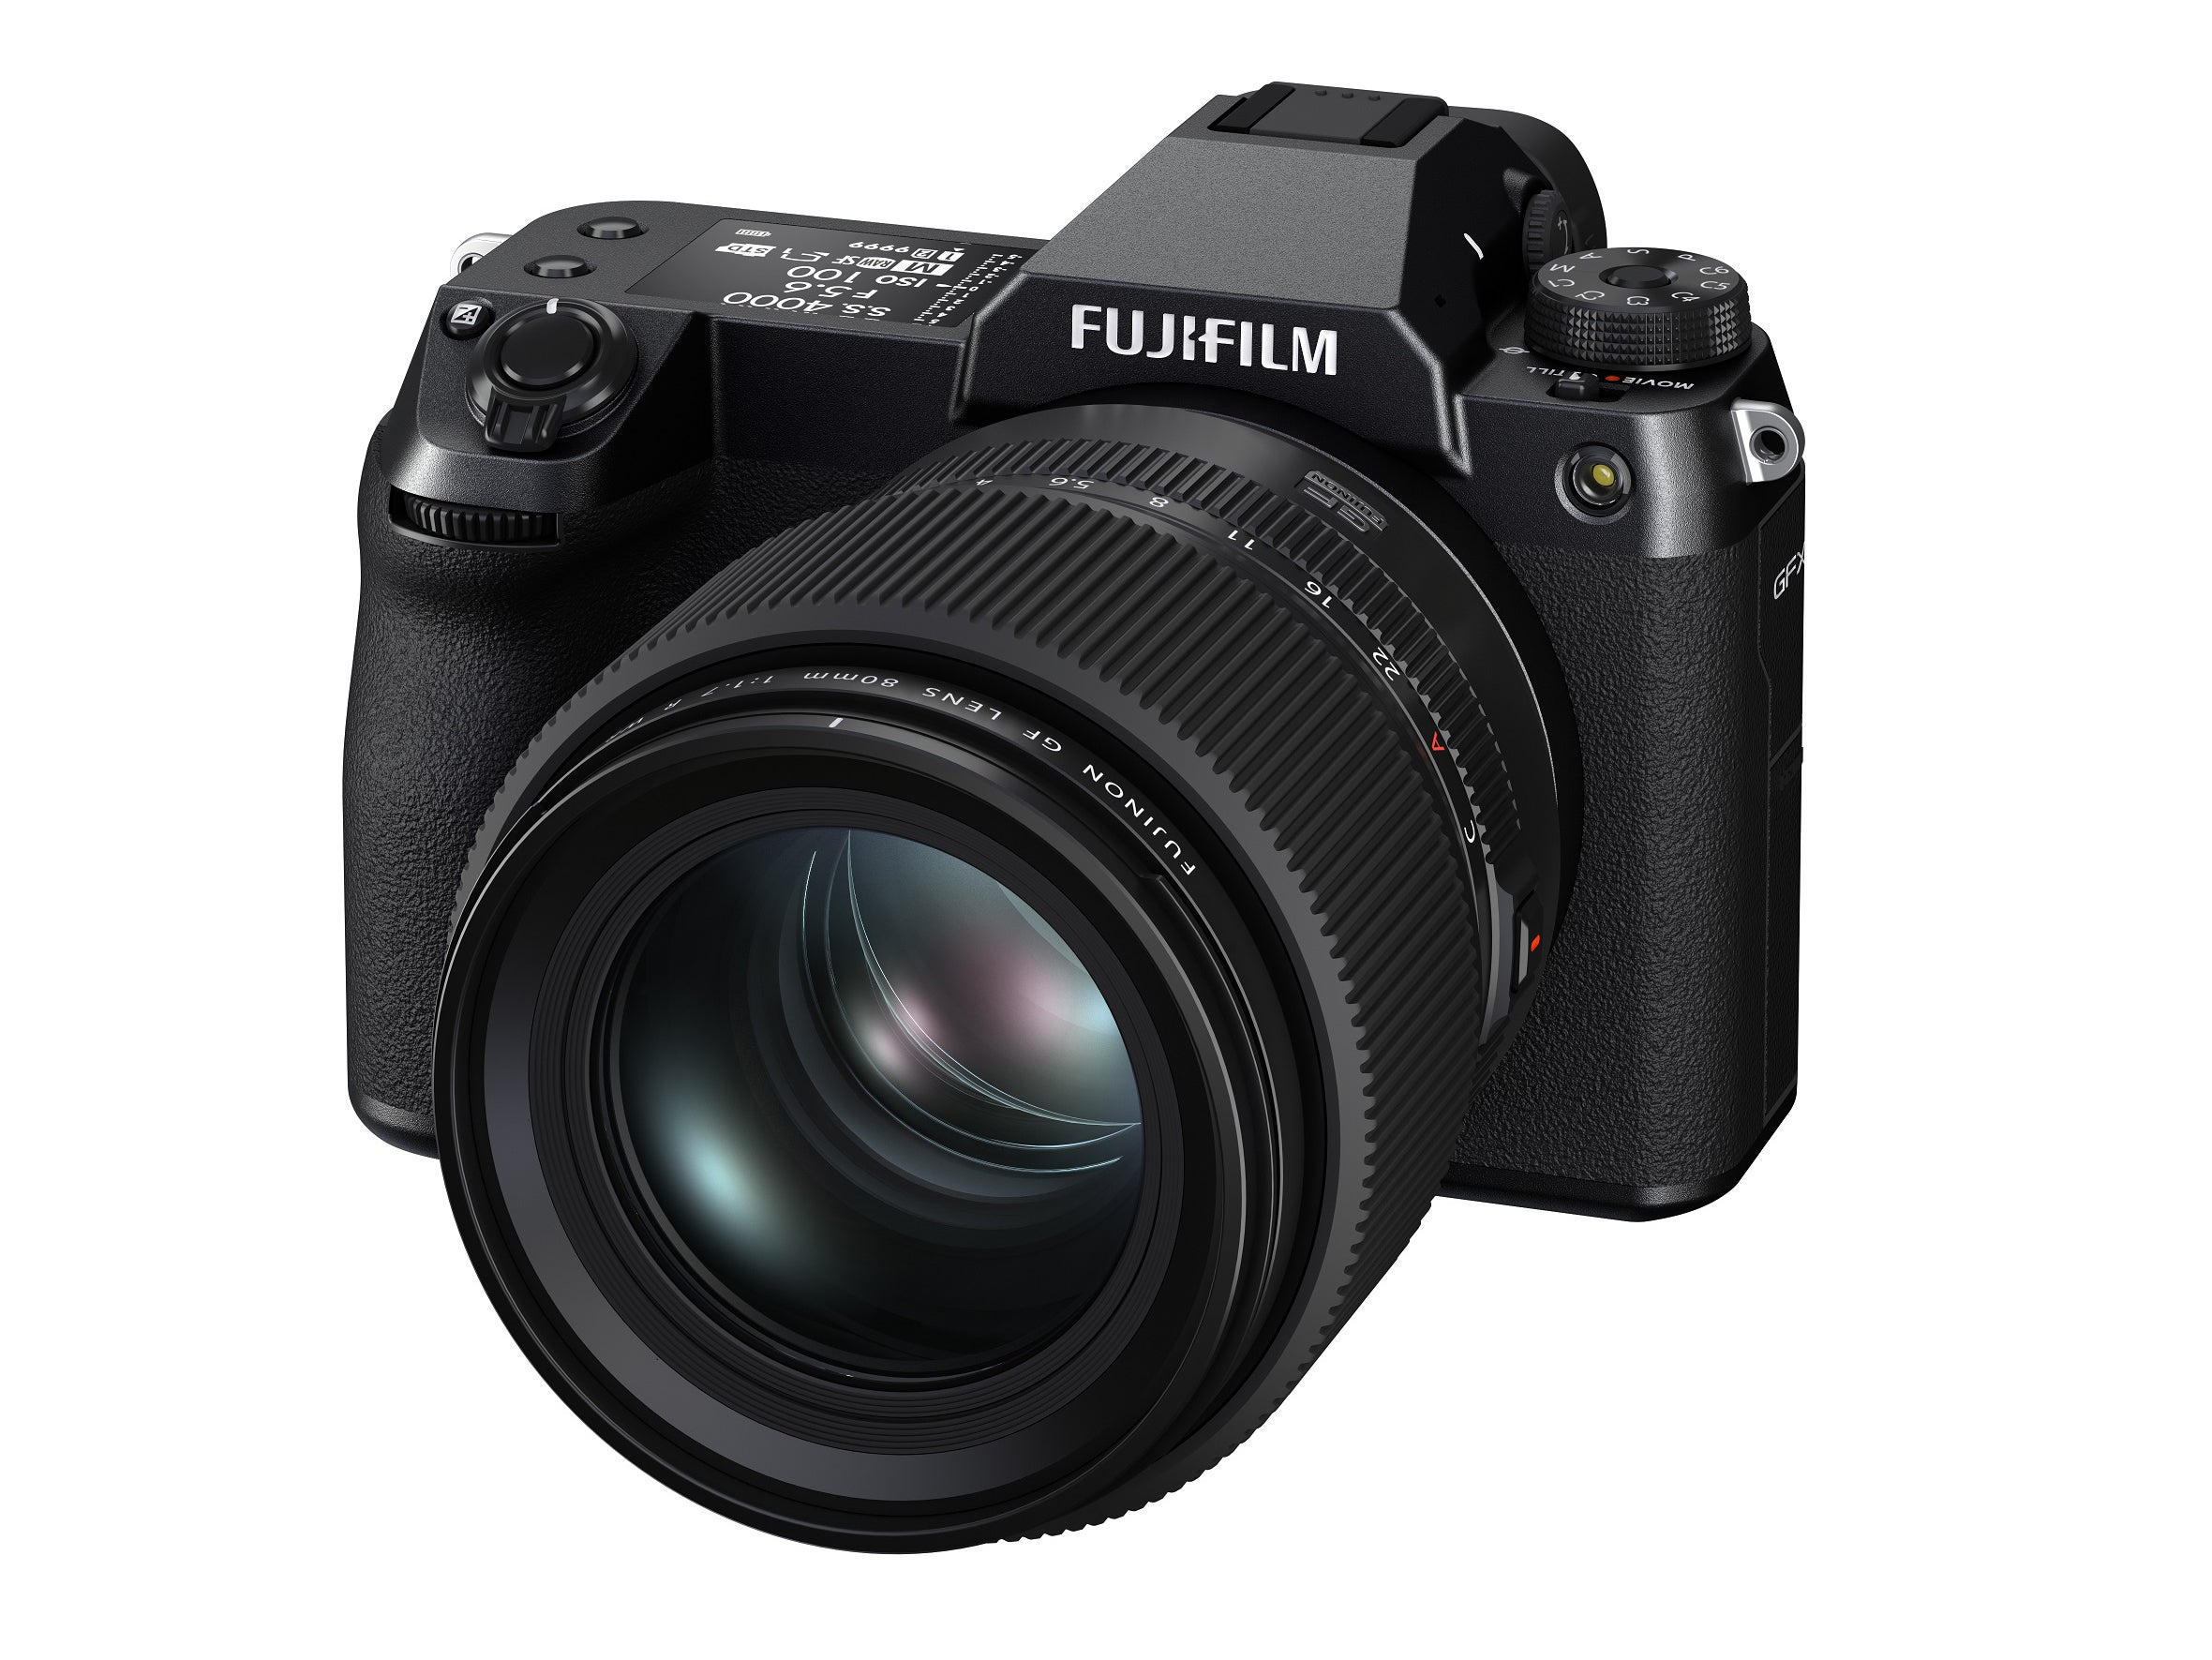 A front view of the Fujifilm GFX 100S camera with the new short portrait lens.